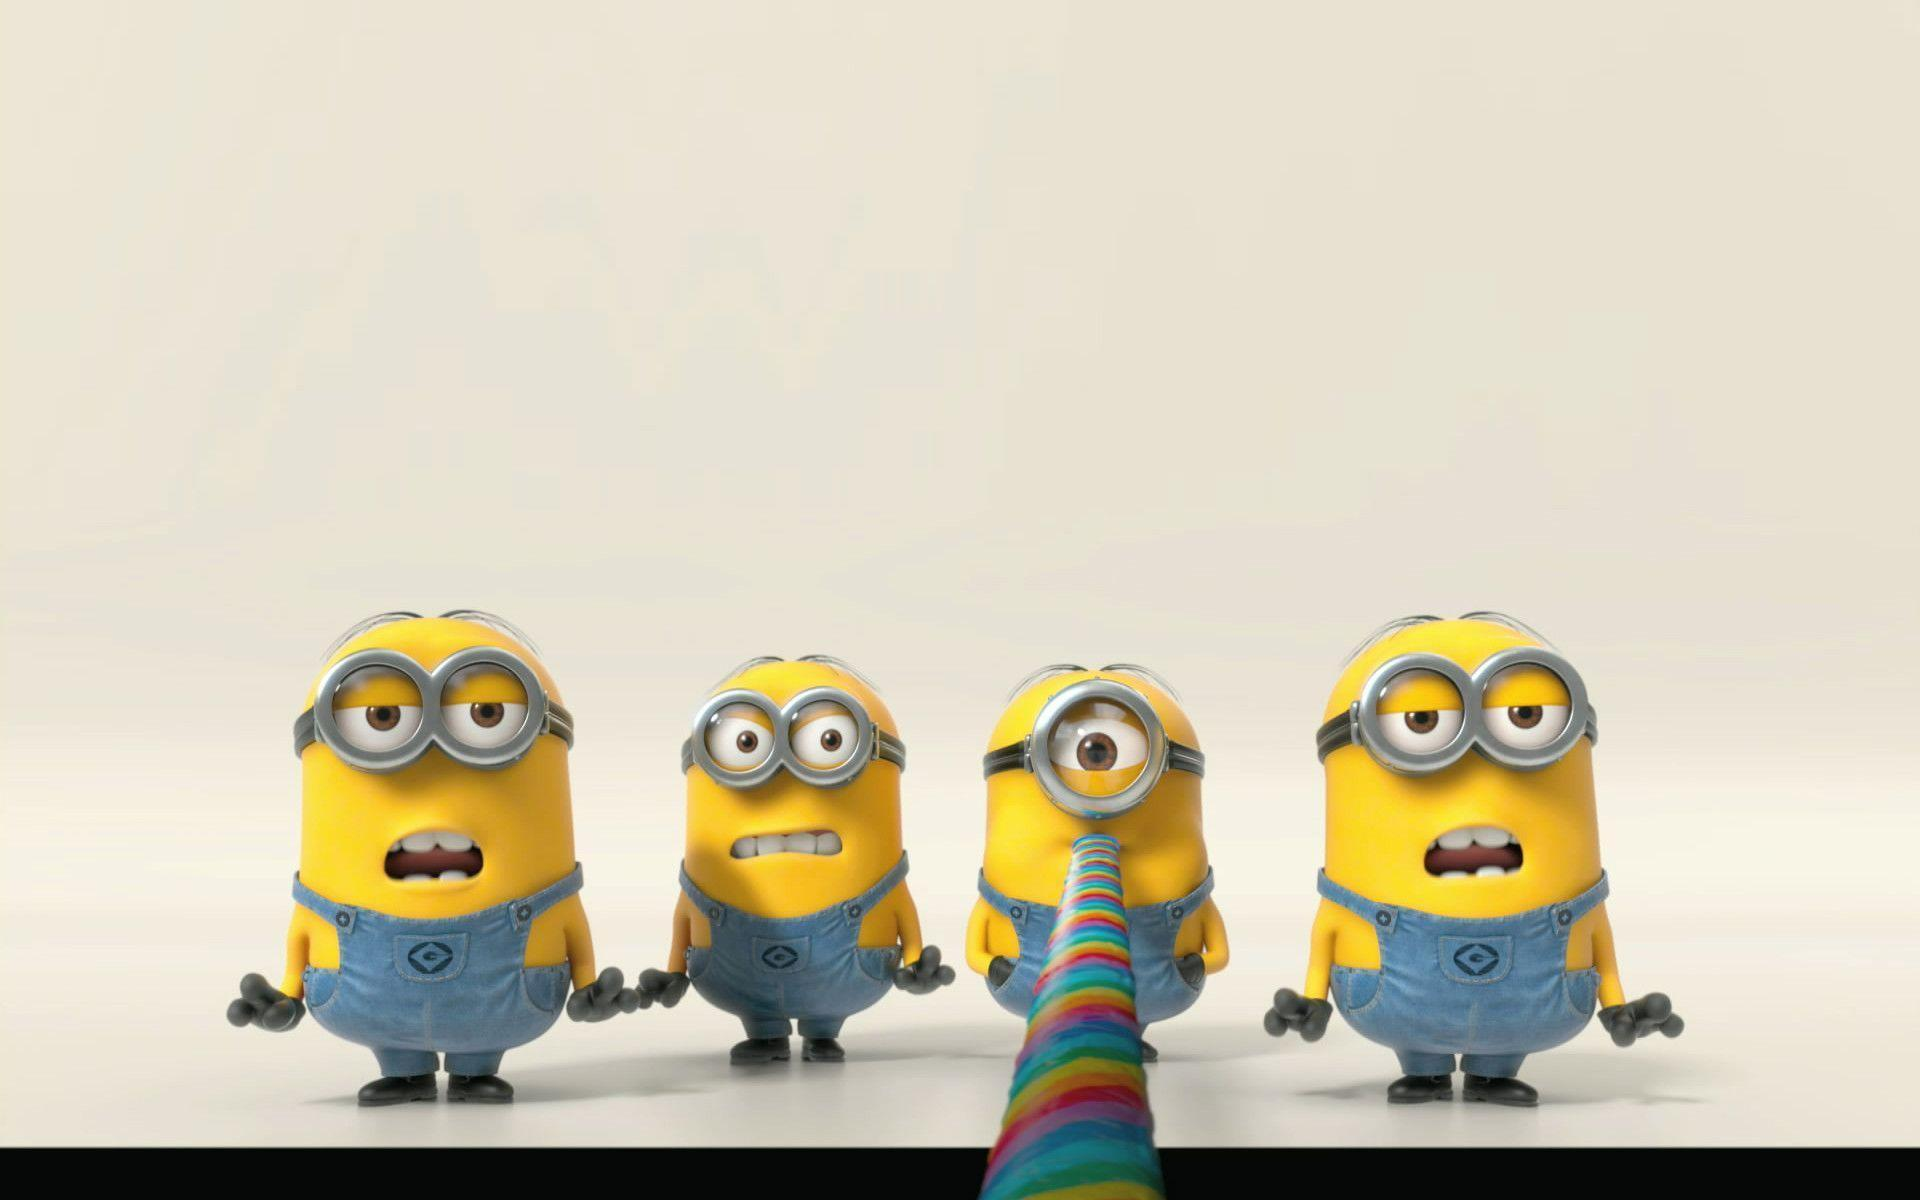 Minions Wallpapers - Full HD wallpaper search - page 3